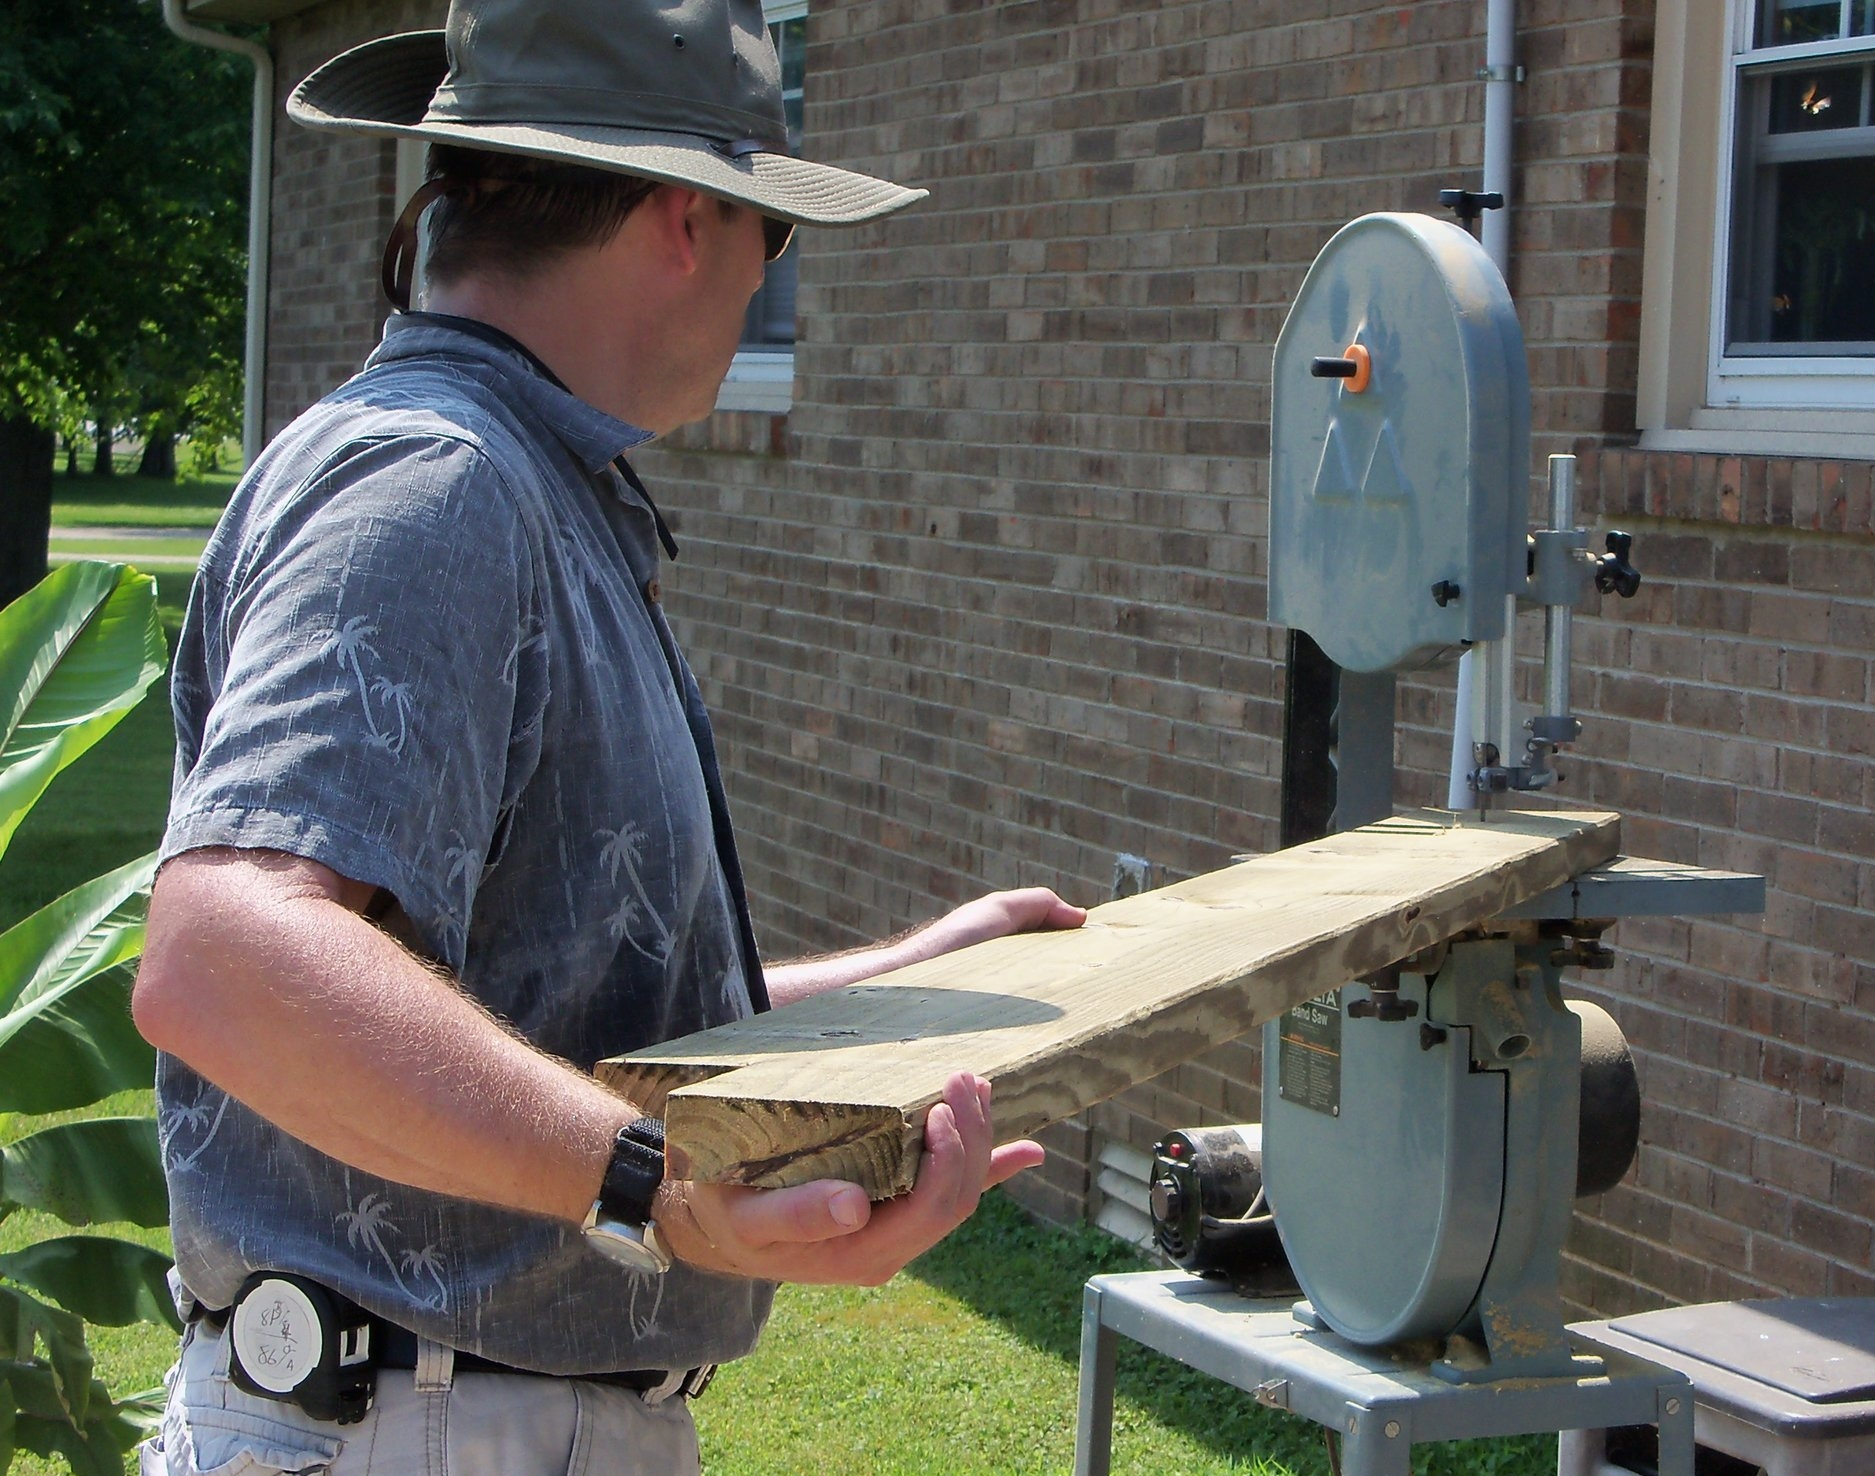 Cutting decorative ends for the pergola on the bandsaw